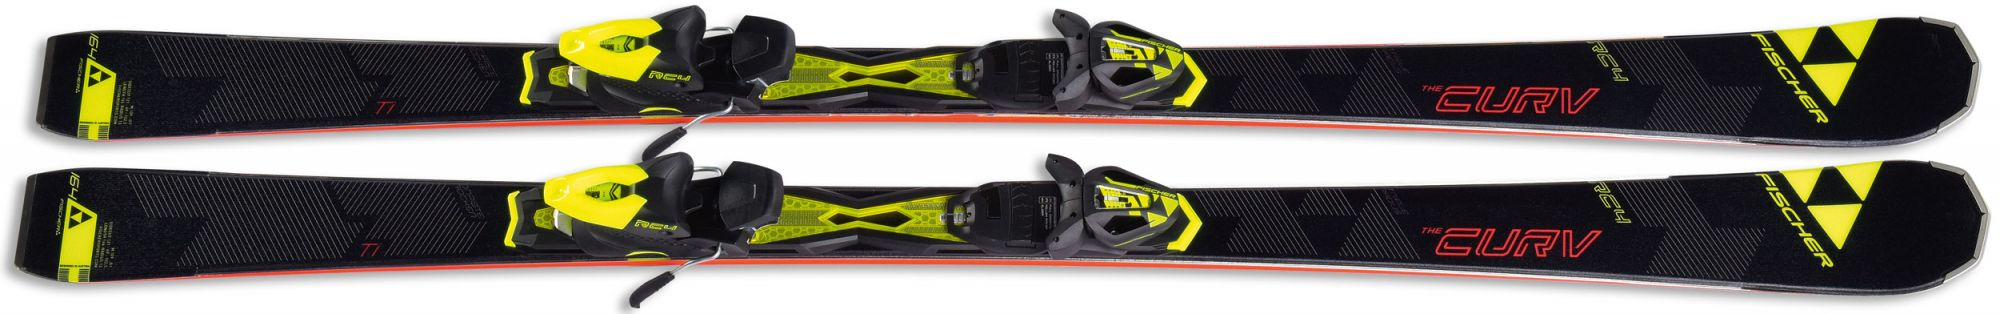 Sci fischer' RC4 The Curv TI